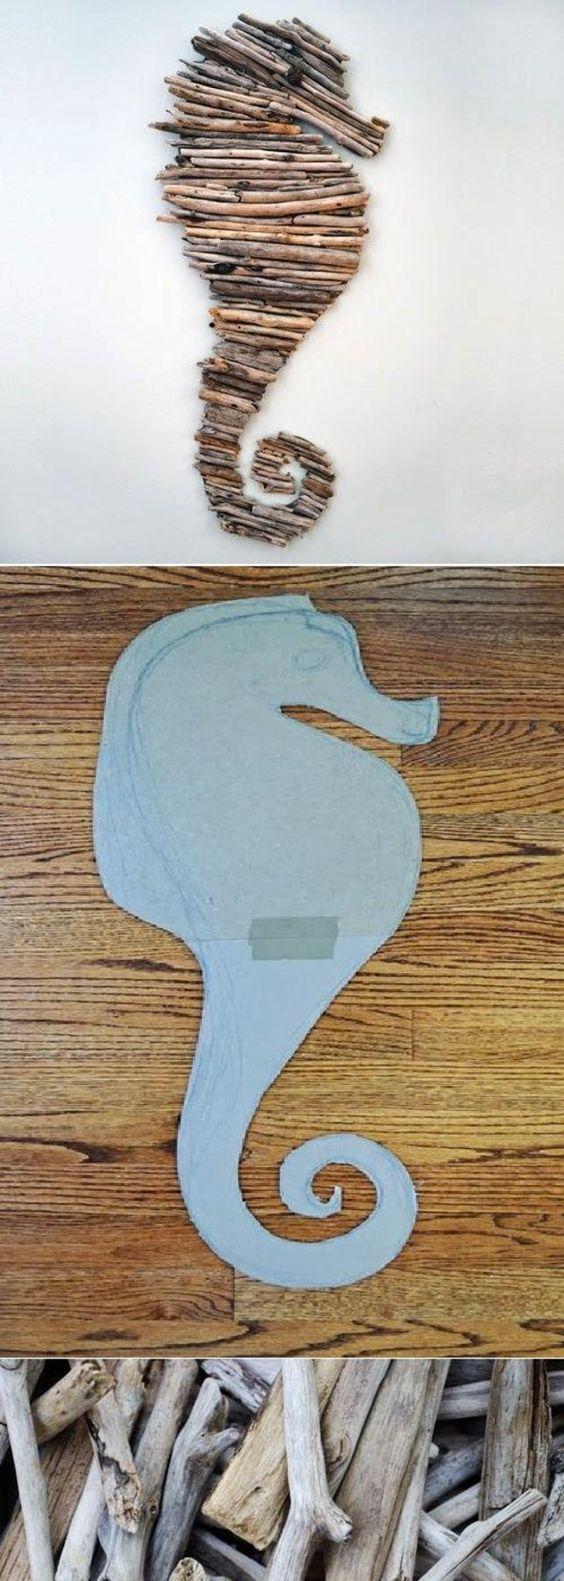 DIY. Might try this idea for something other than a sea horse though…